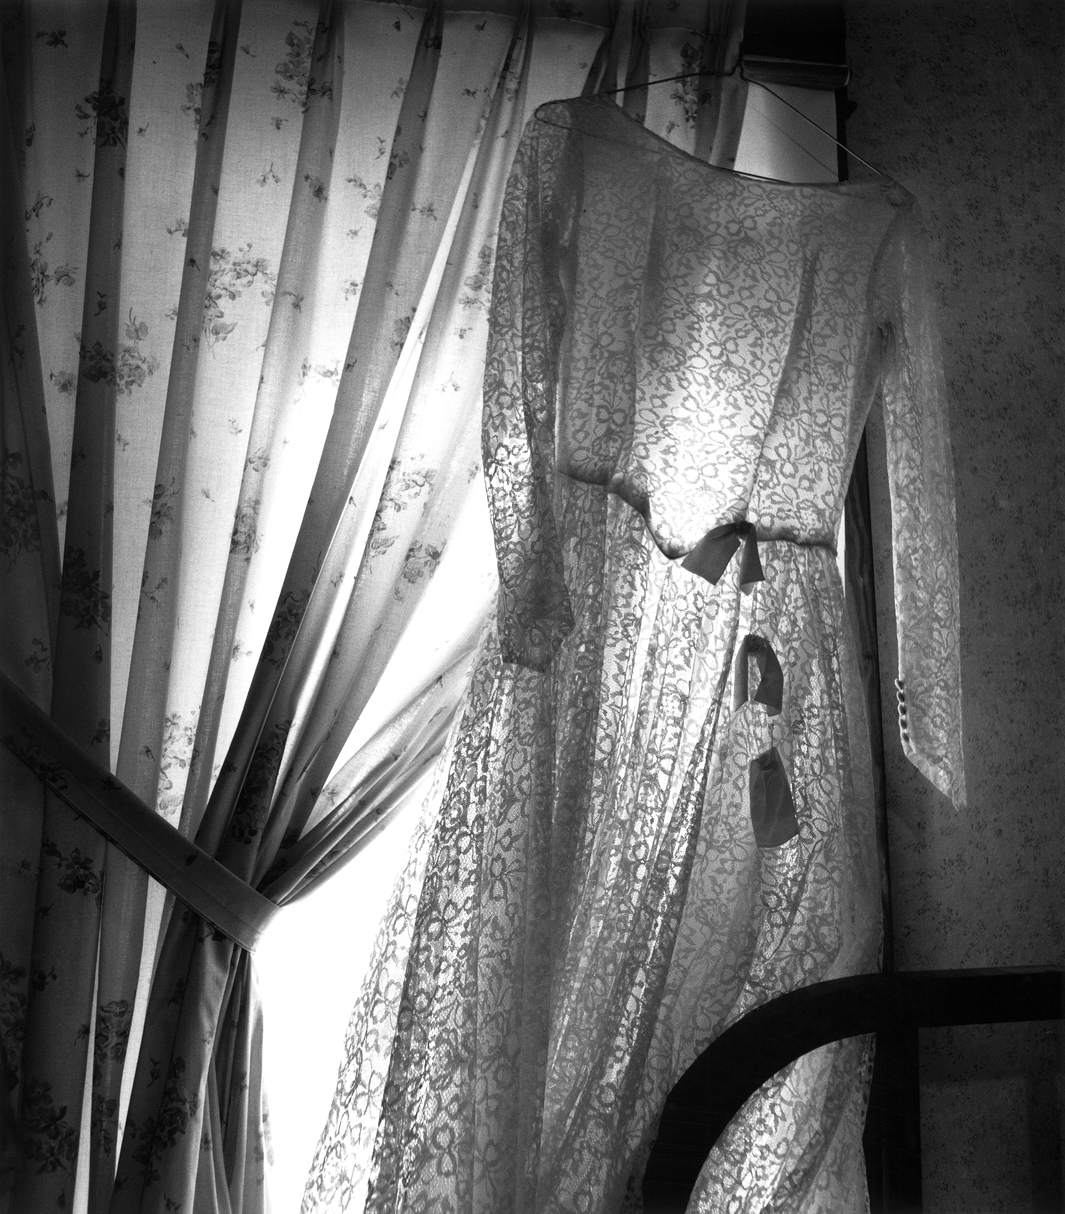 Wedding dress, Herchenbach place, Cass County, Iowa, 2007.